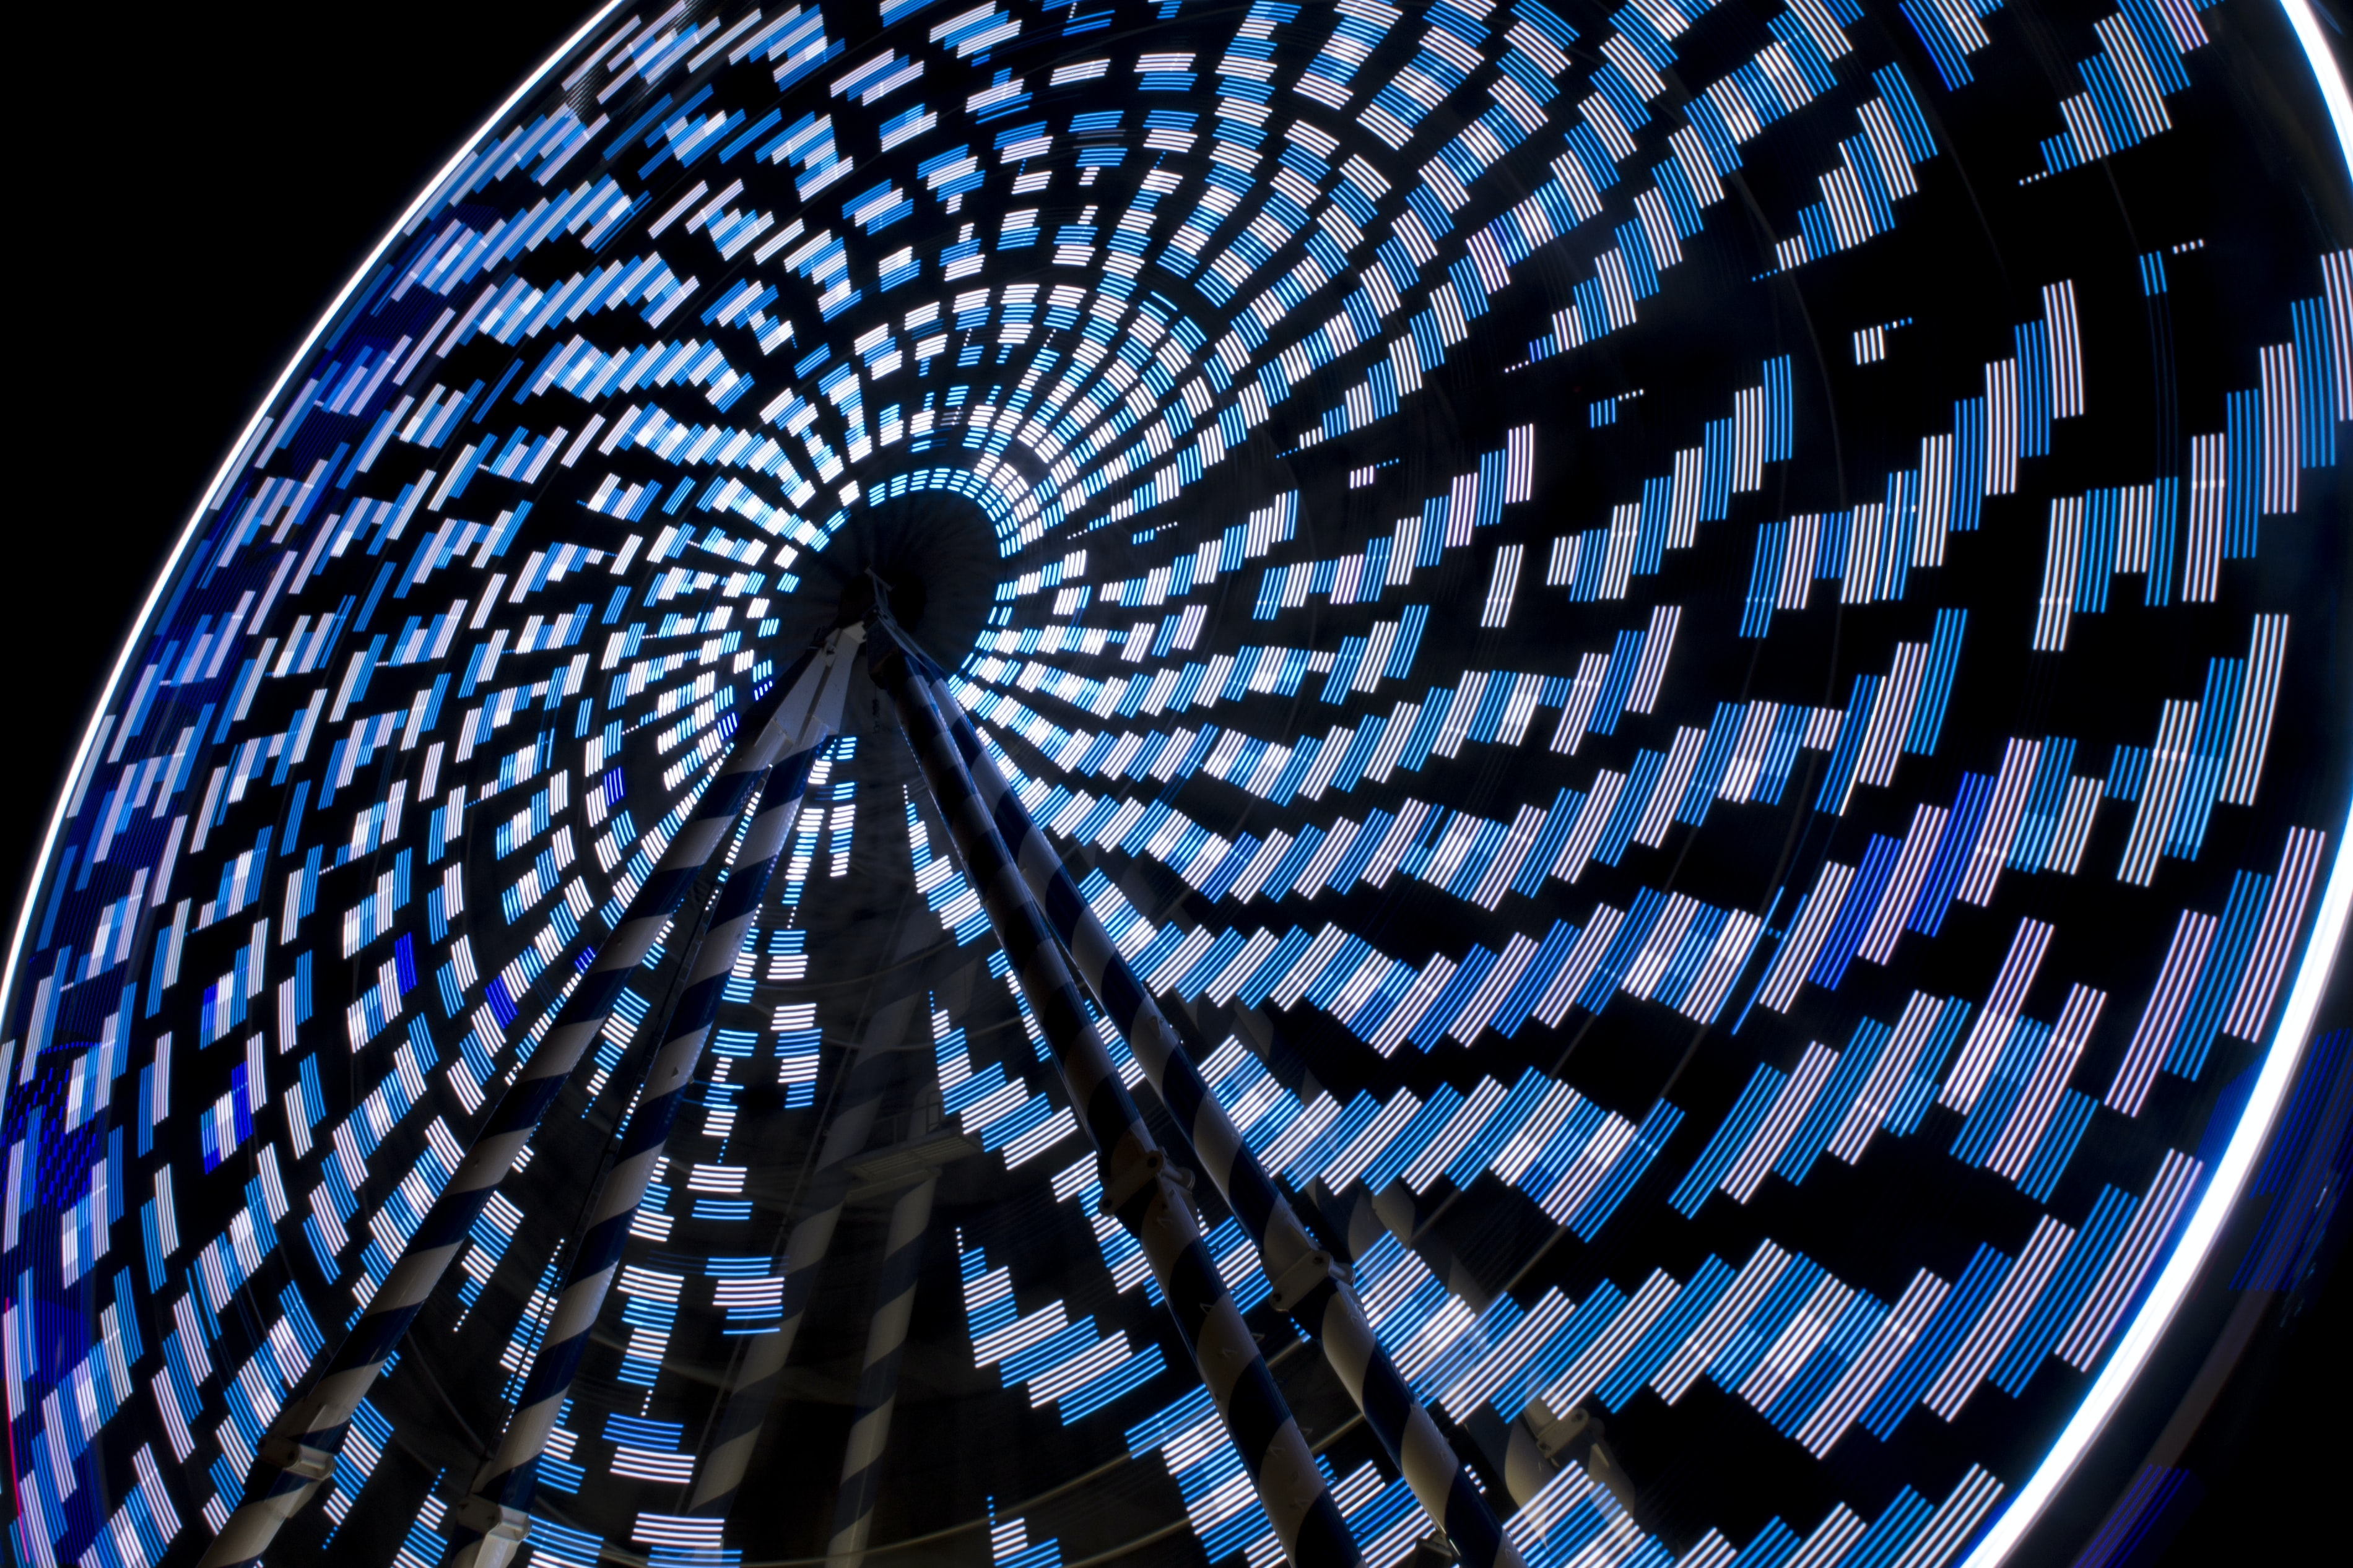 time lapse photo of ferris wheel